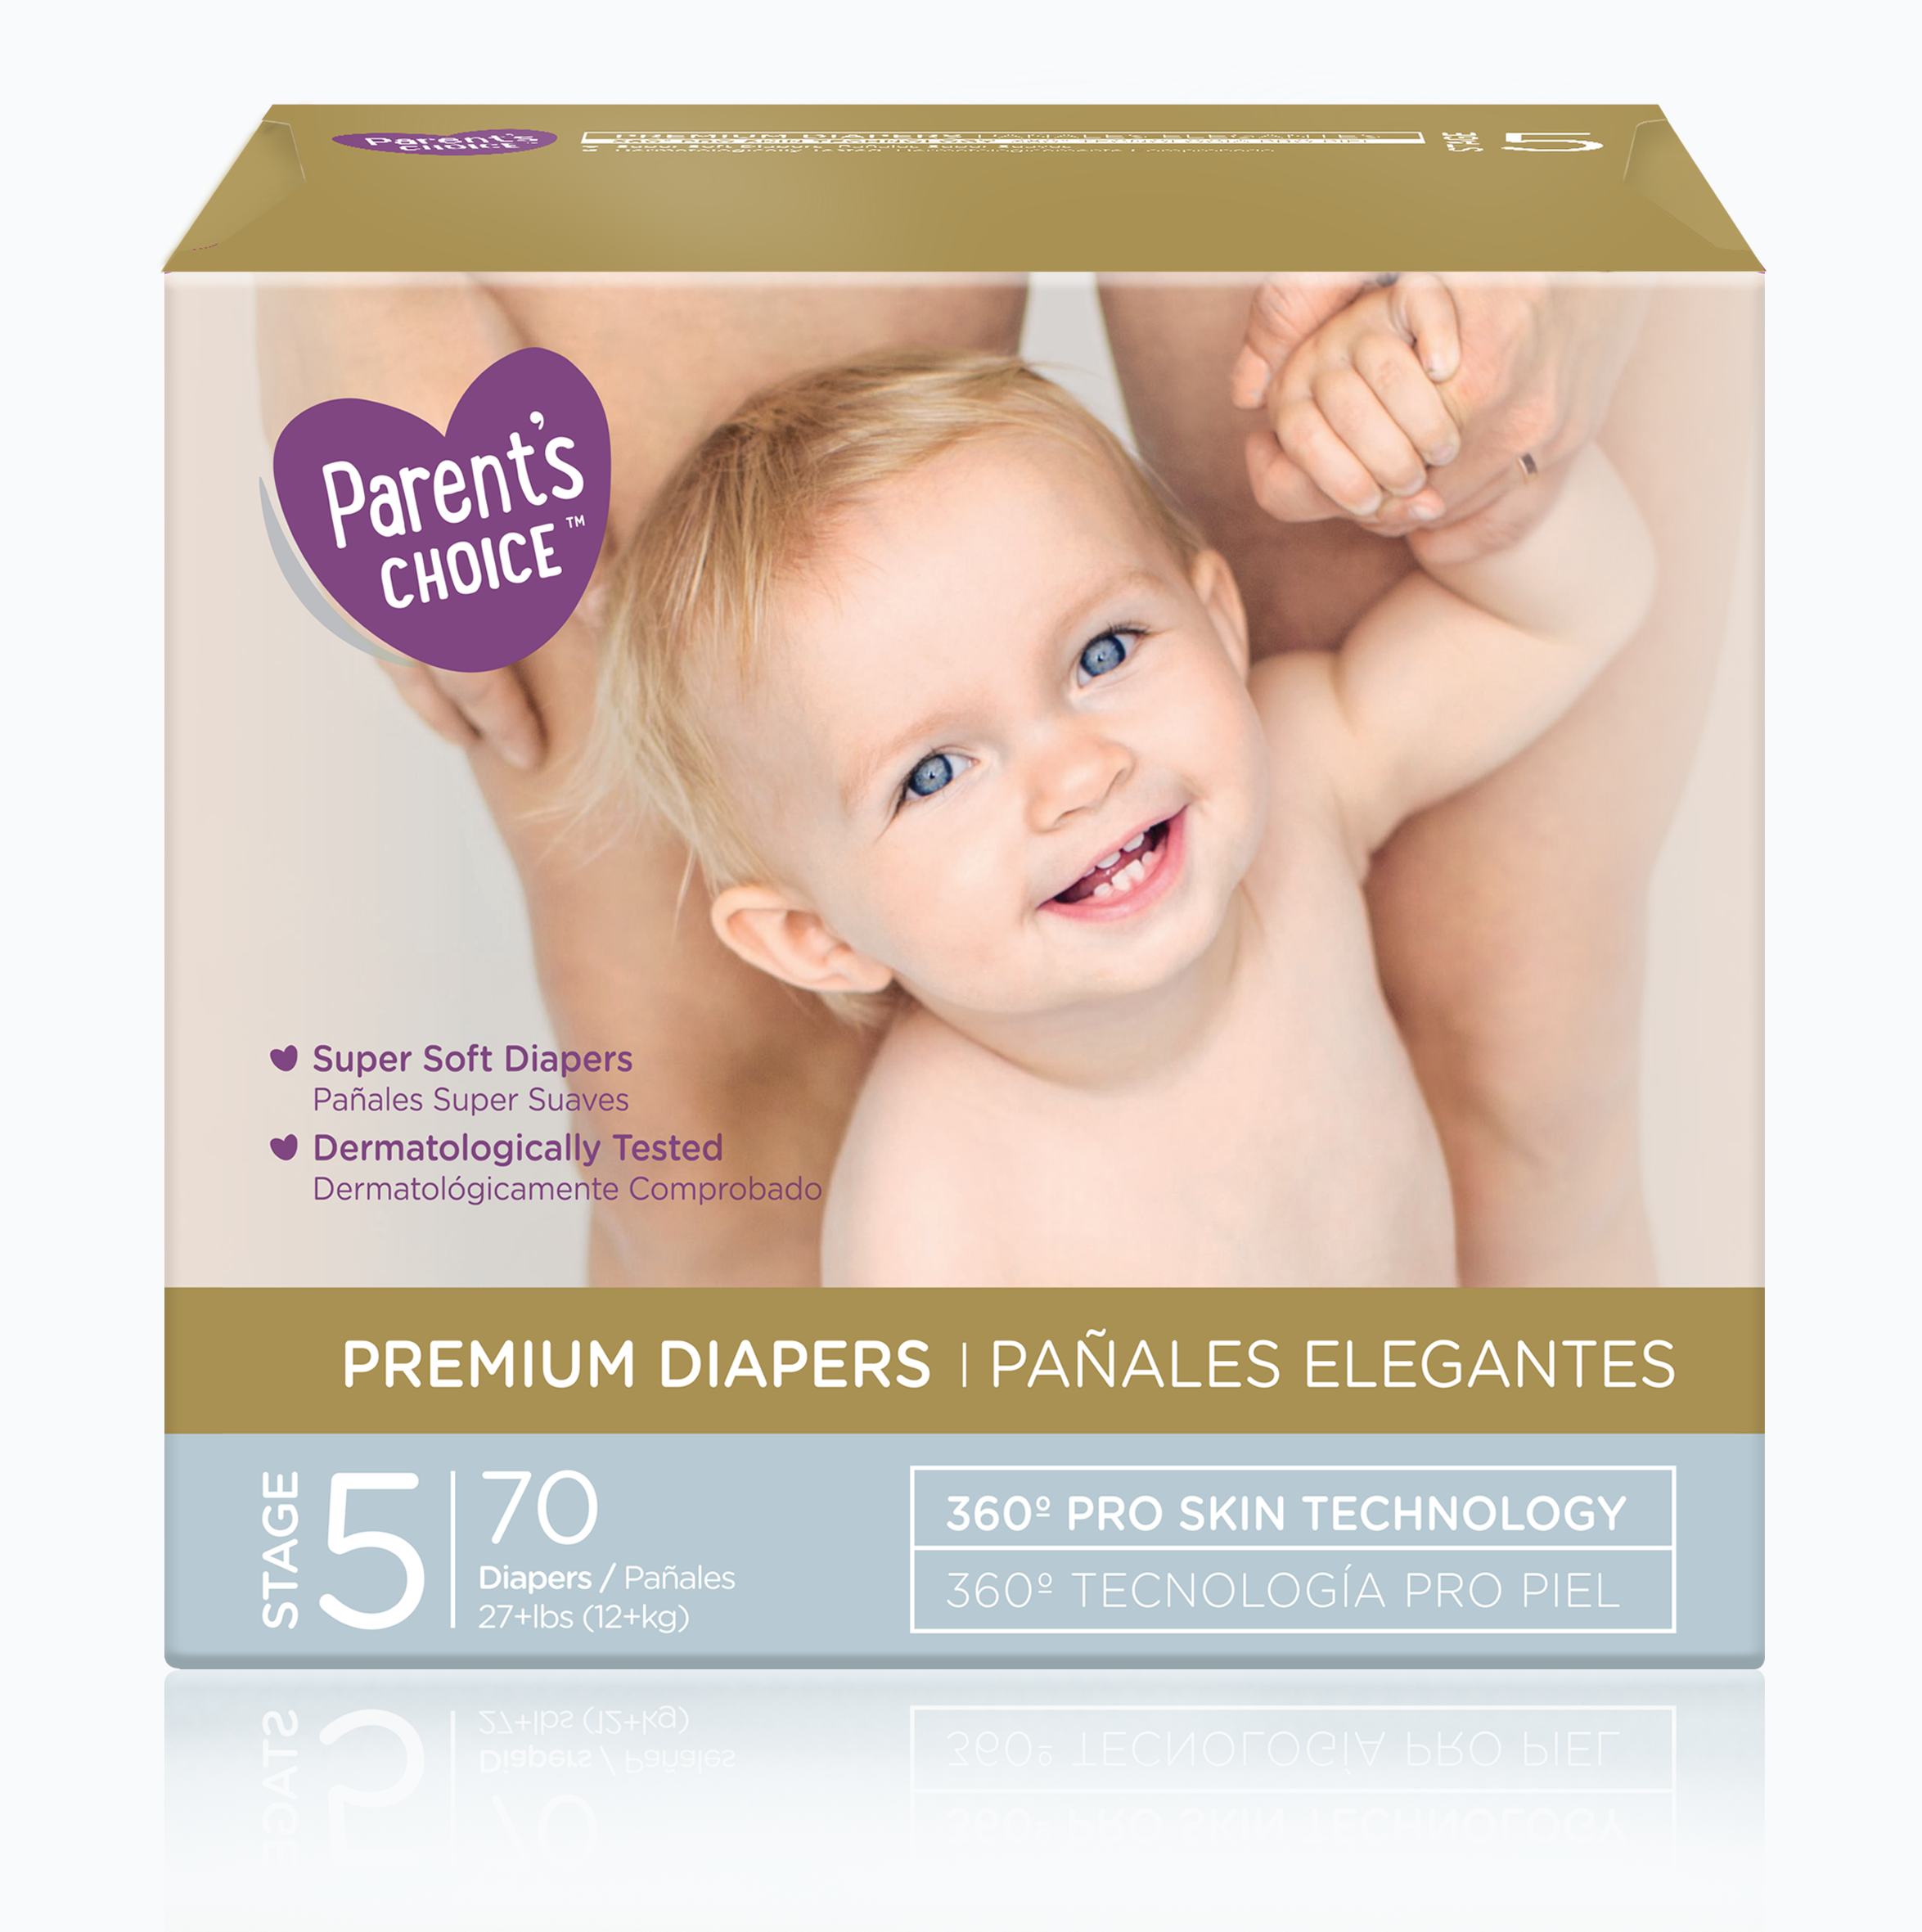 Parent's Choice Premium Diapers, Size 5, 70 Diapers